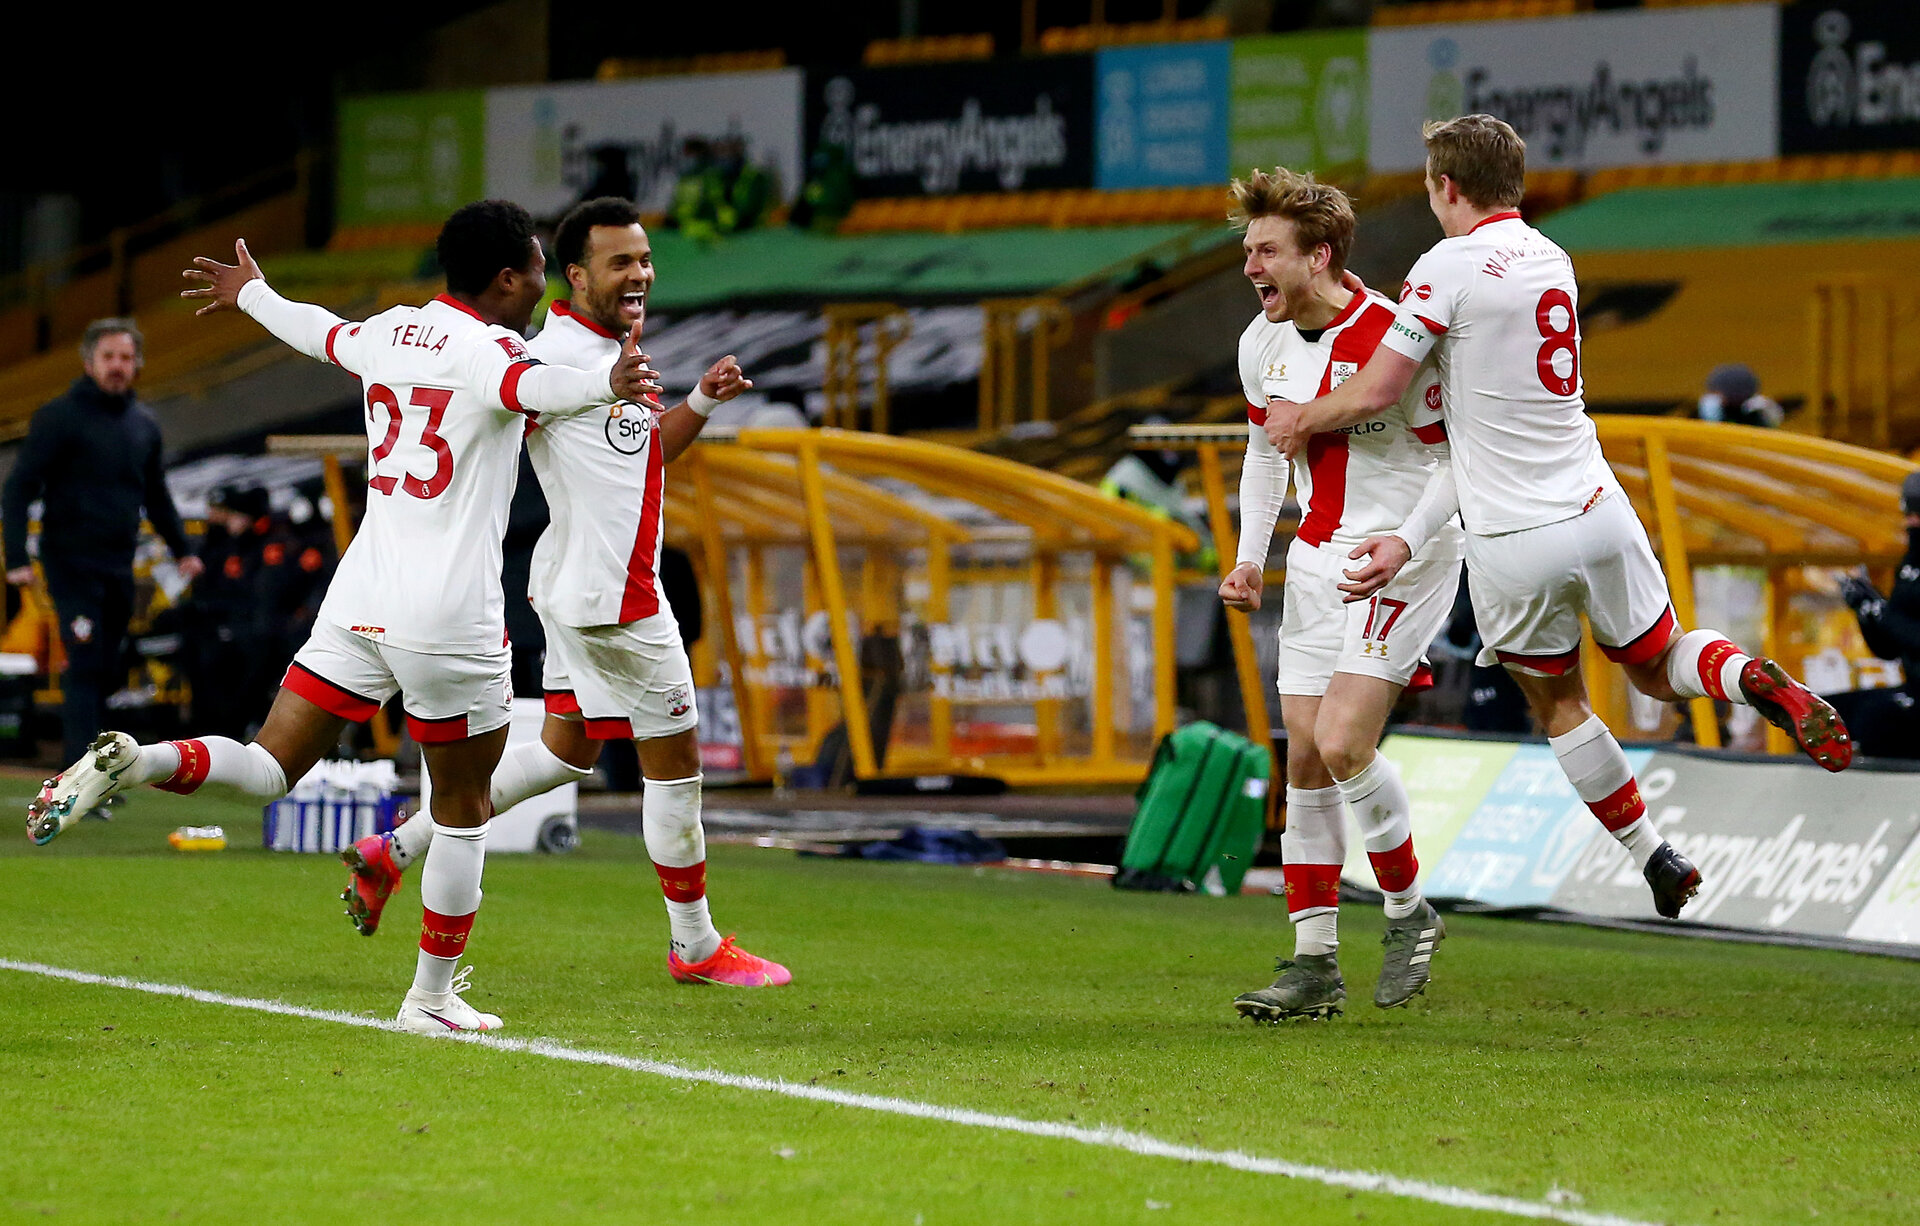 WOLVERHAMPTON, ENGLAND - FEBRUARY 11: Stuart Armstrong(second from the right) of celebrates with team mates after scoring during The Emirates FA Cup Fifth Round match between Wolverhampton Wanderers and Southampton at Molineux on February 11, 2021 in Wolverhampton, England. Sporting stadiums around the UK remain under strict restrictions due to the Coronavirus Pandemic as Government social distancing laws prohibit fans inside venues resulting in games being played behind closed doors. (Photo by Matt Watson/Southampton FC via Getty Images)